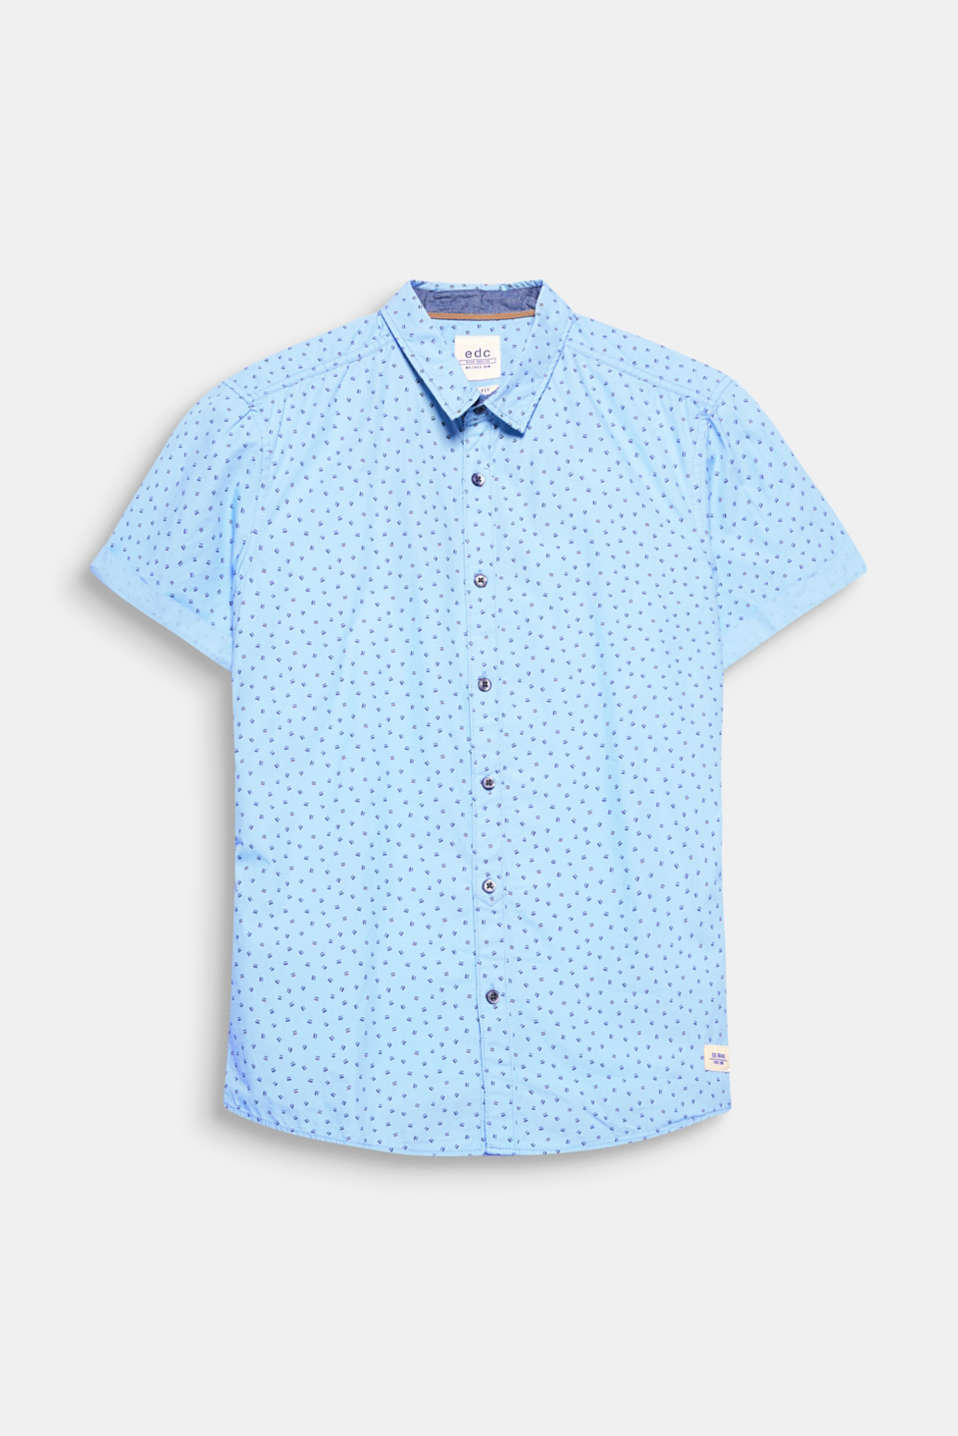 Minimal print, maximal effect! The geometric print gives this short sleeve shirt a fresh look.